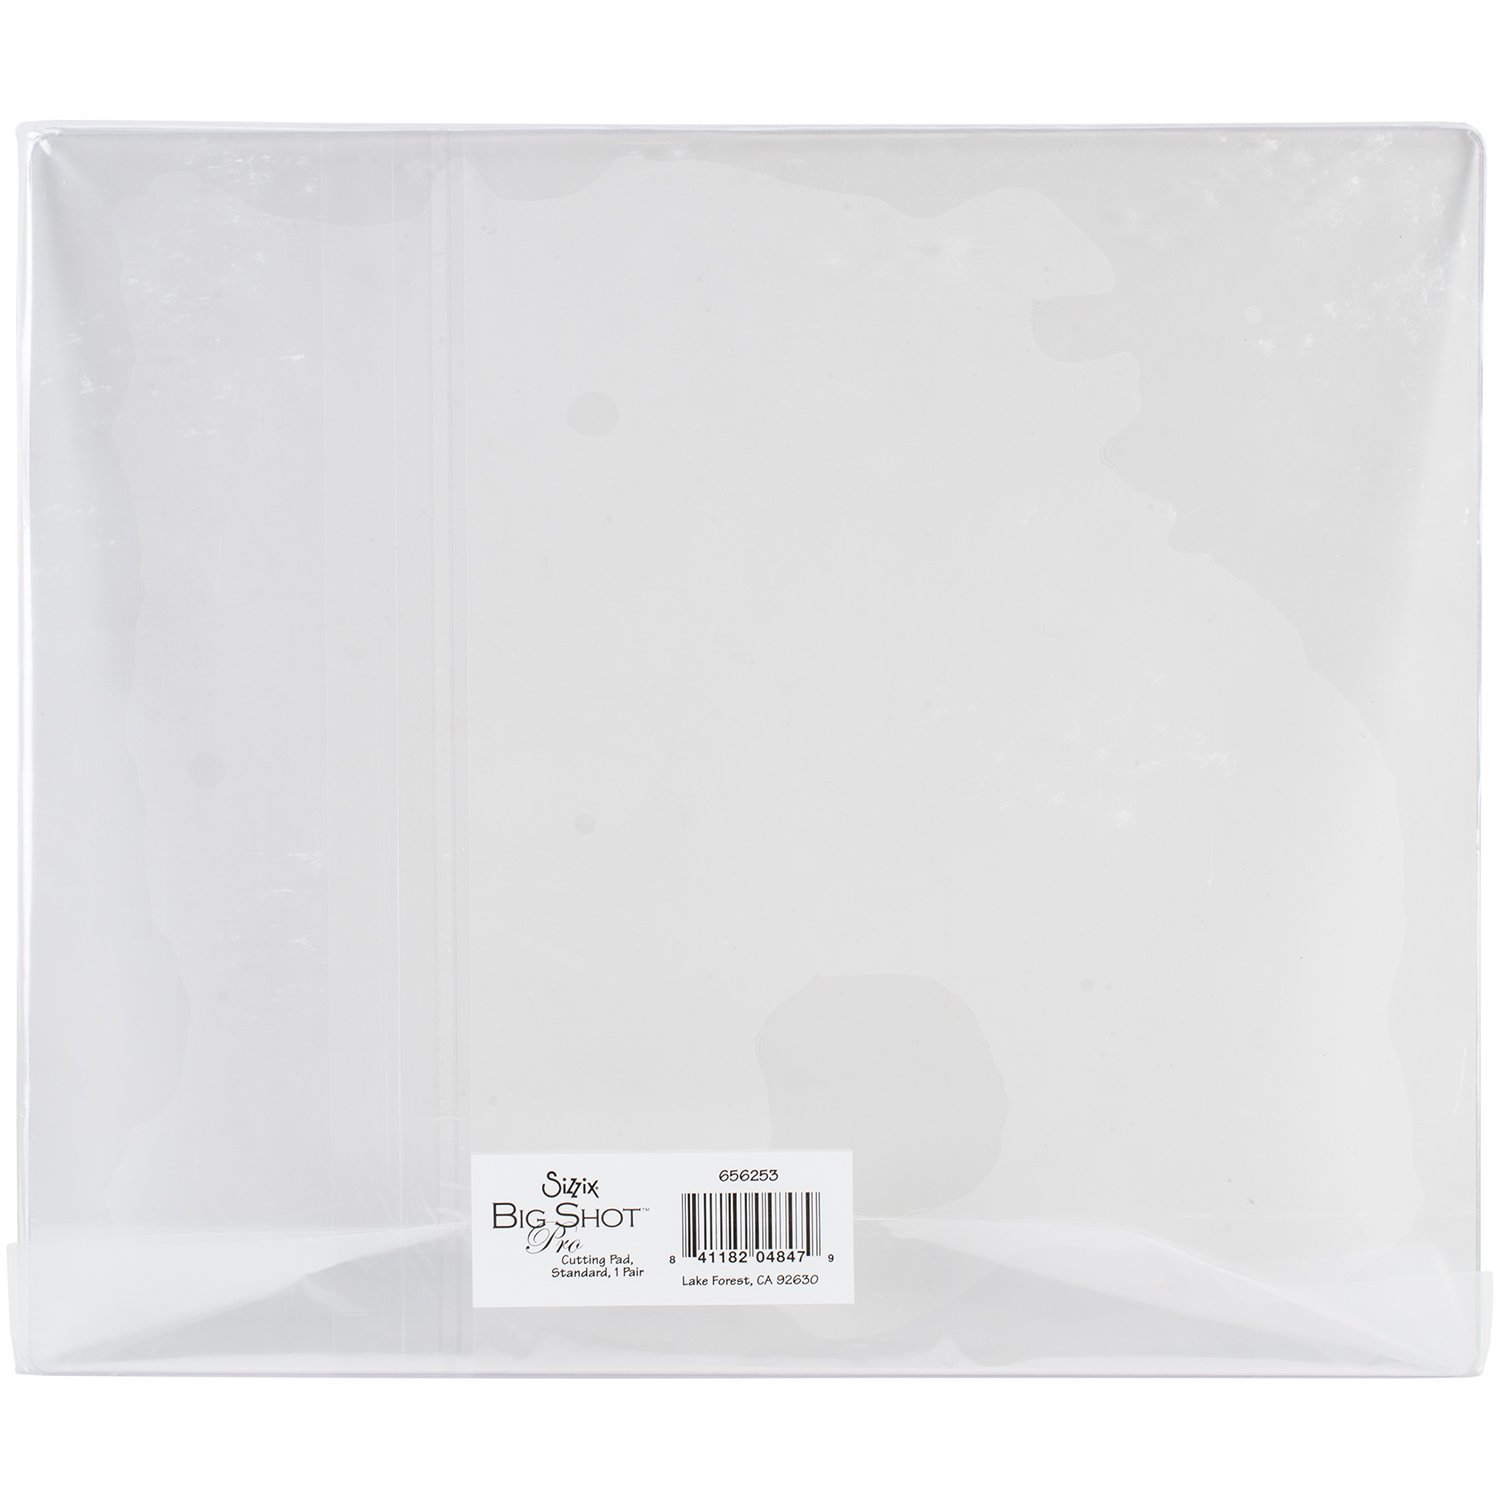 Sizzix Cutting Pads for Big Shot Pro 656253, 2 Pack, Multi Color, One Size,